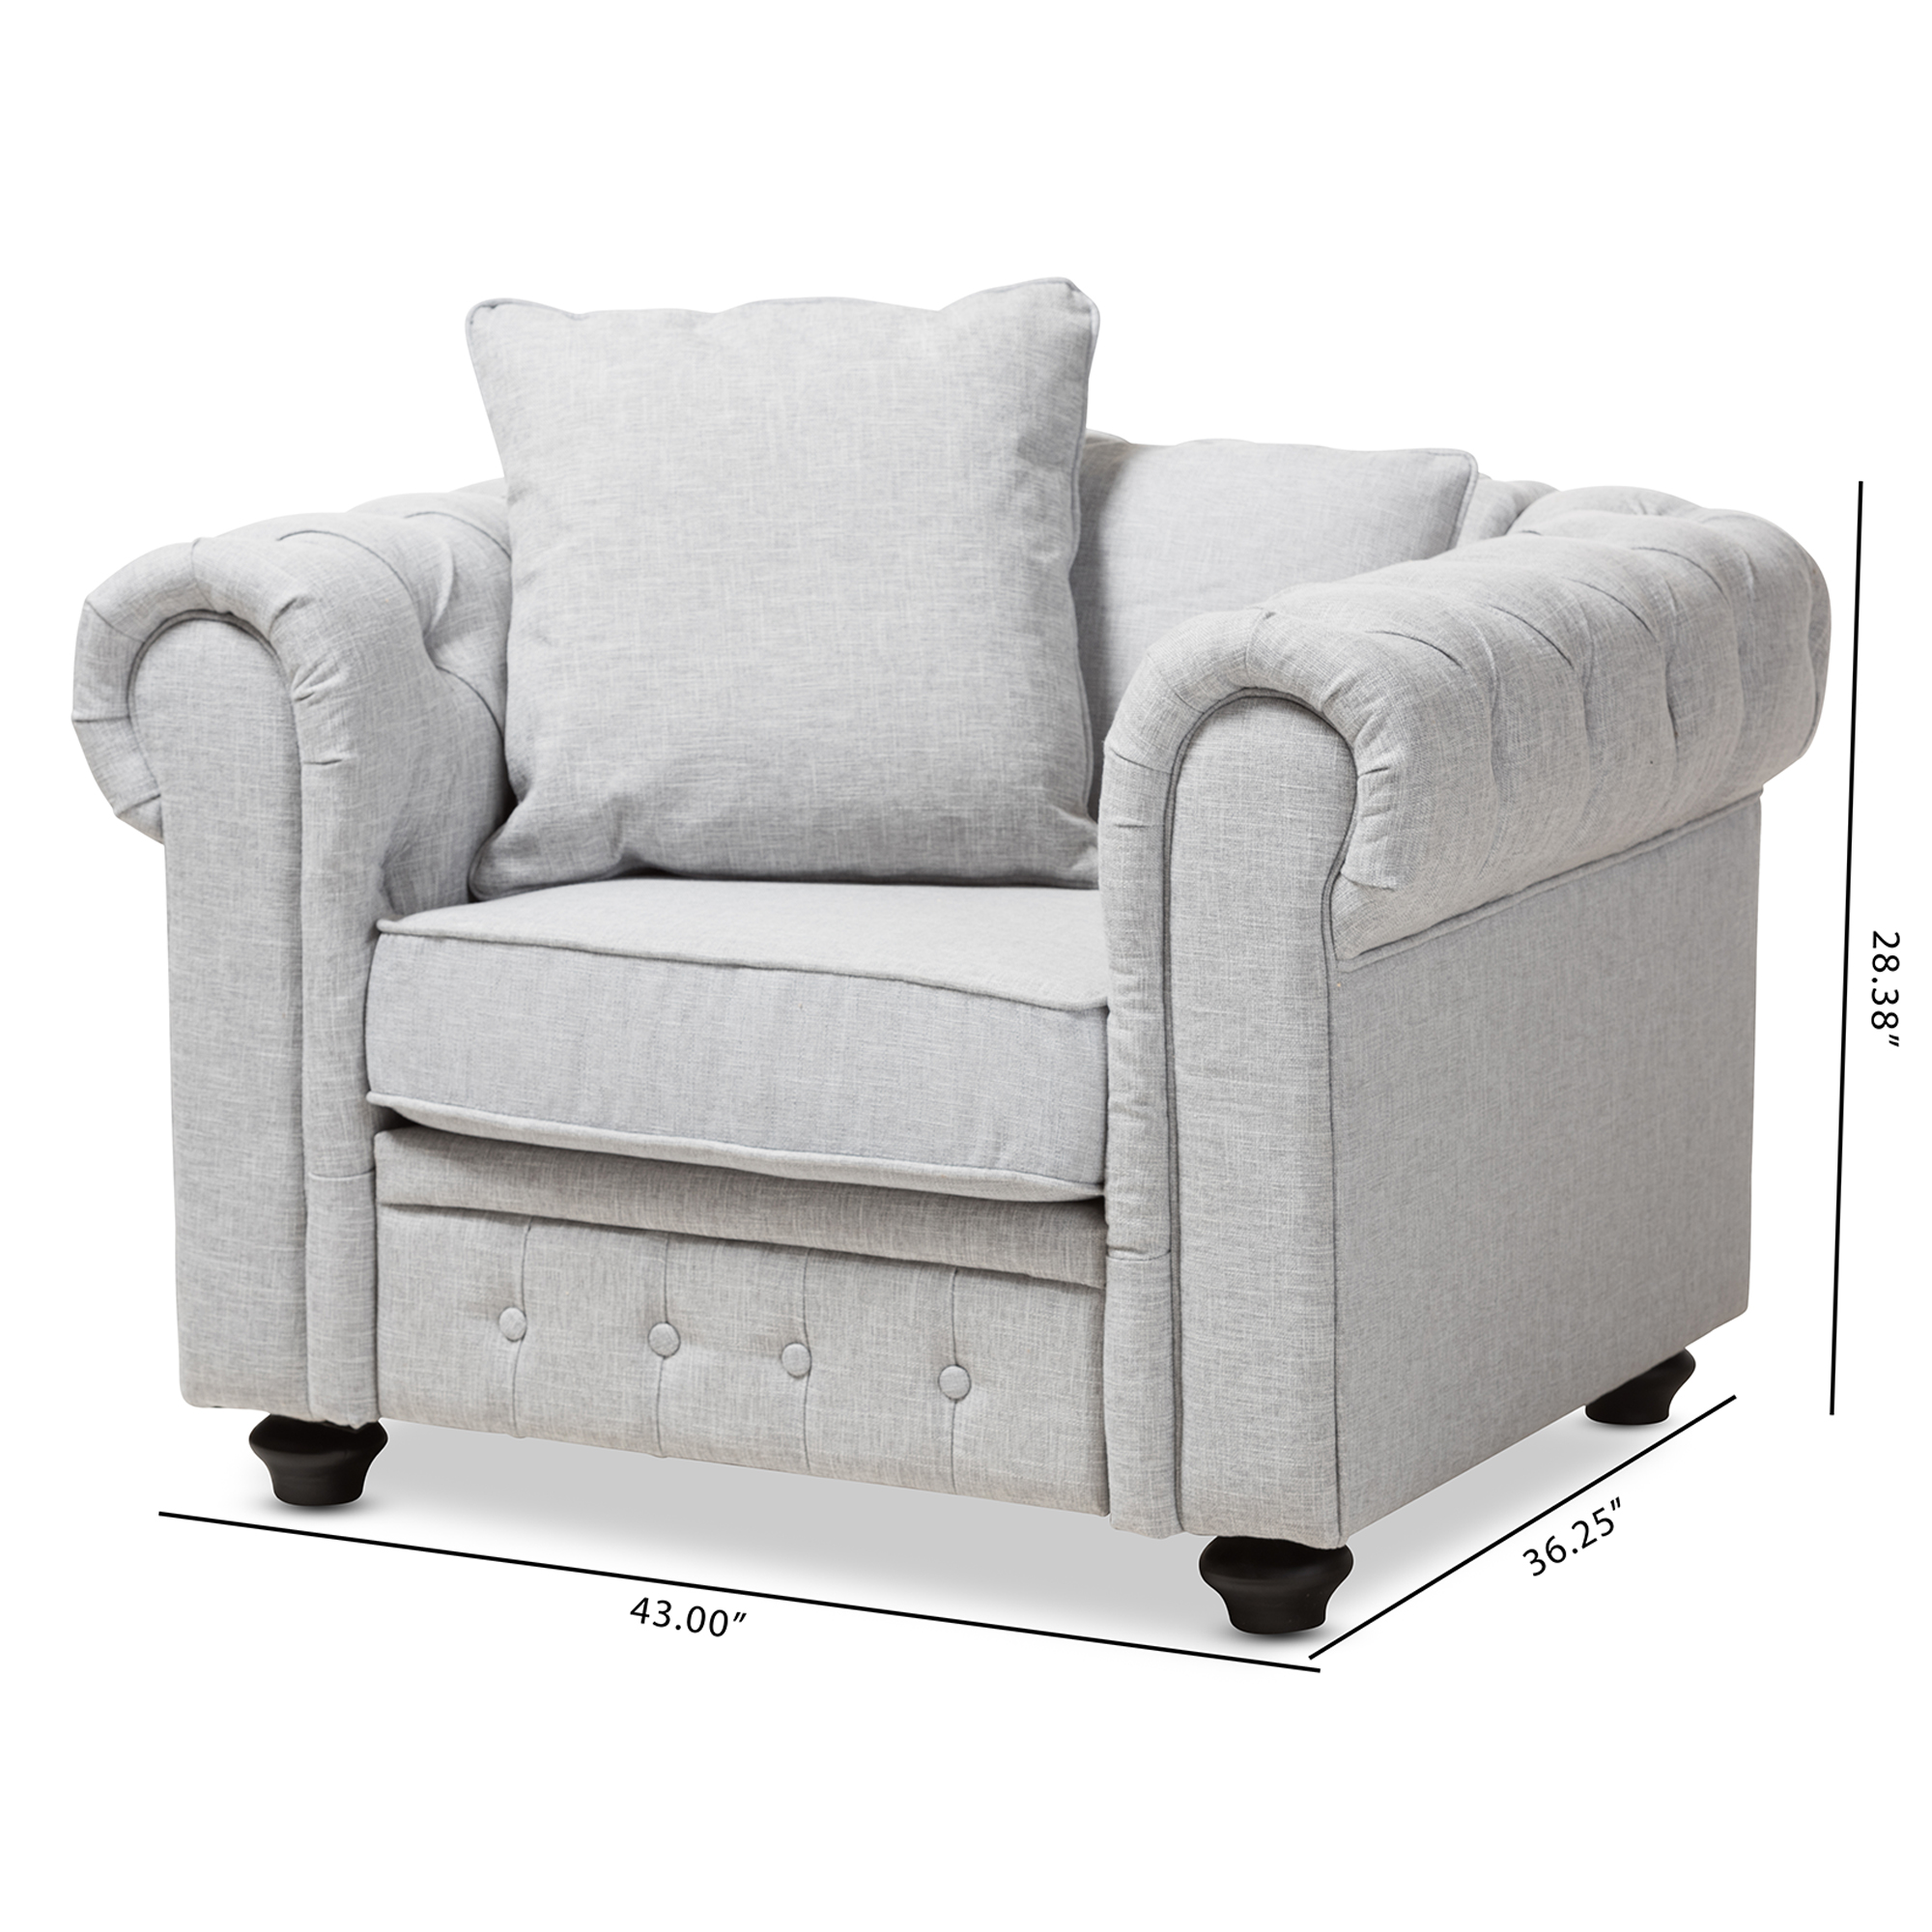 ... Baxton Studio Alaise Modern Classic Grey Linen Tufted Scroll Arm  Chesterfield Chair   IERX1616 Gray